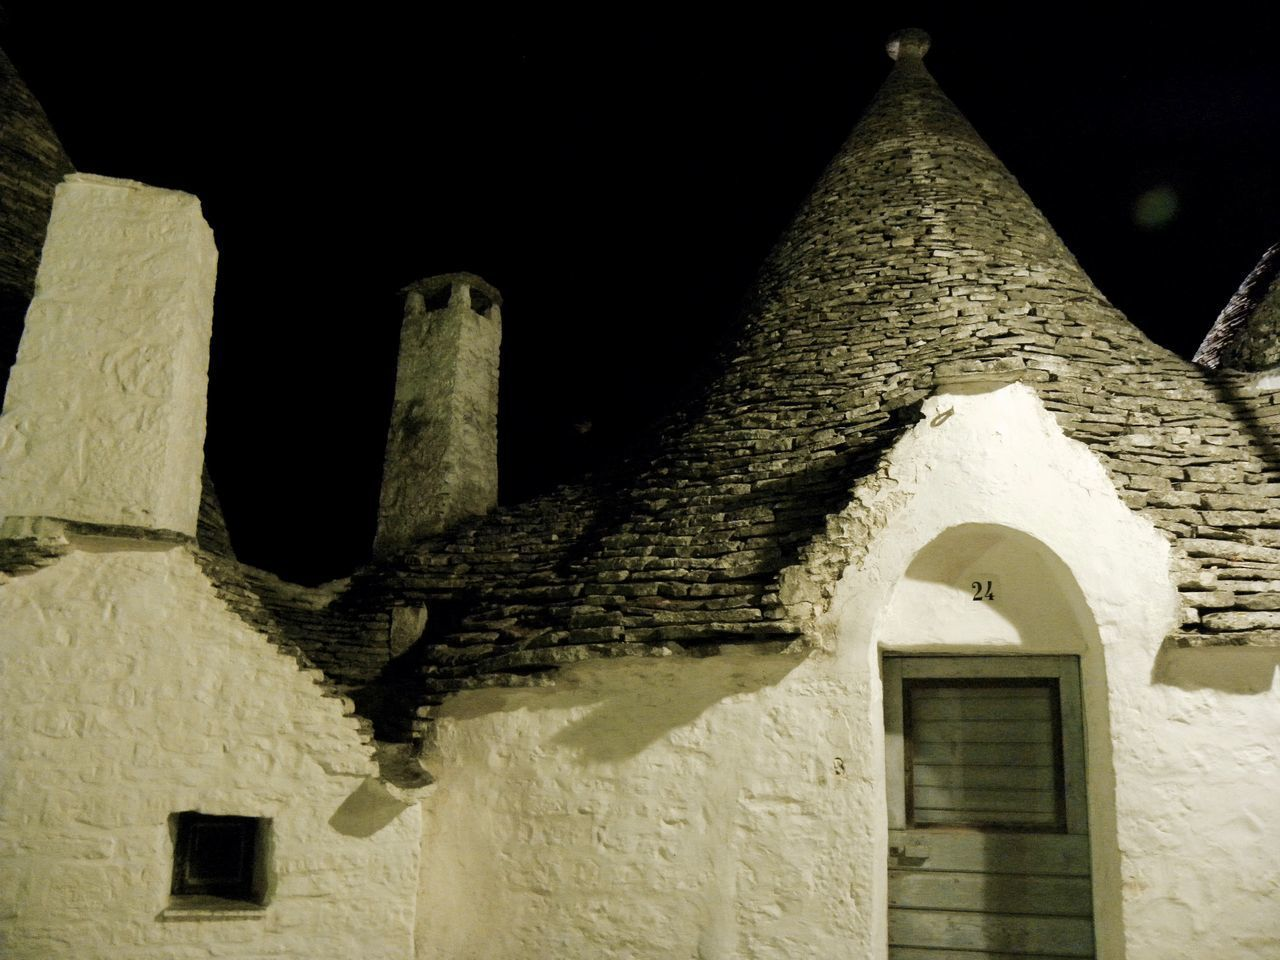 Alberobello Alberobello - Puglia Alberobello City Alberobellocity Alberobelloexperience Alberobellophotocontest Architecture Building Exterior Built Structure Day History No People Outdoors